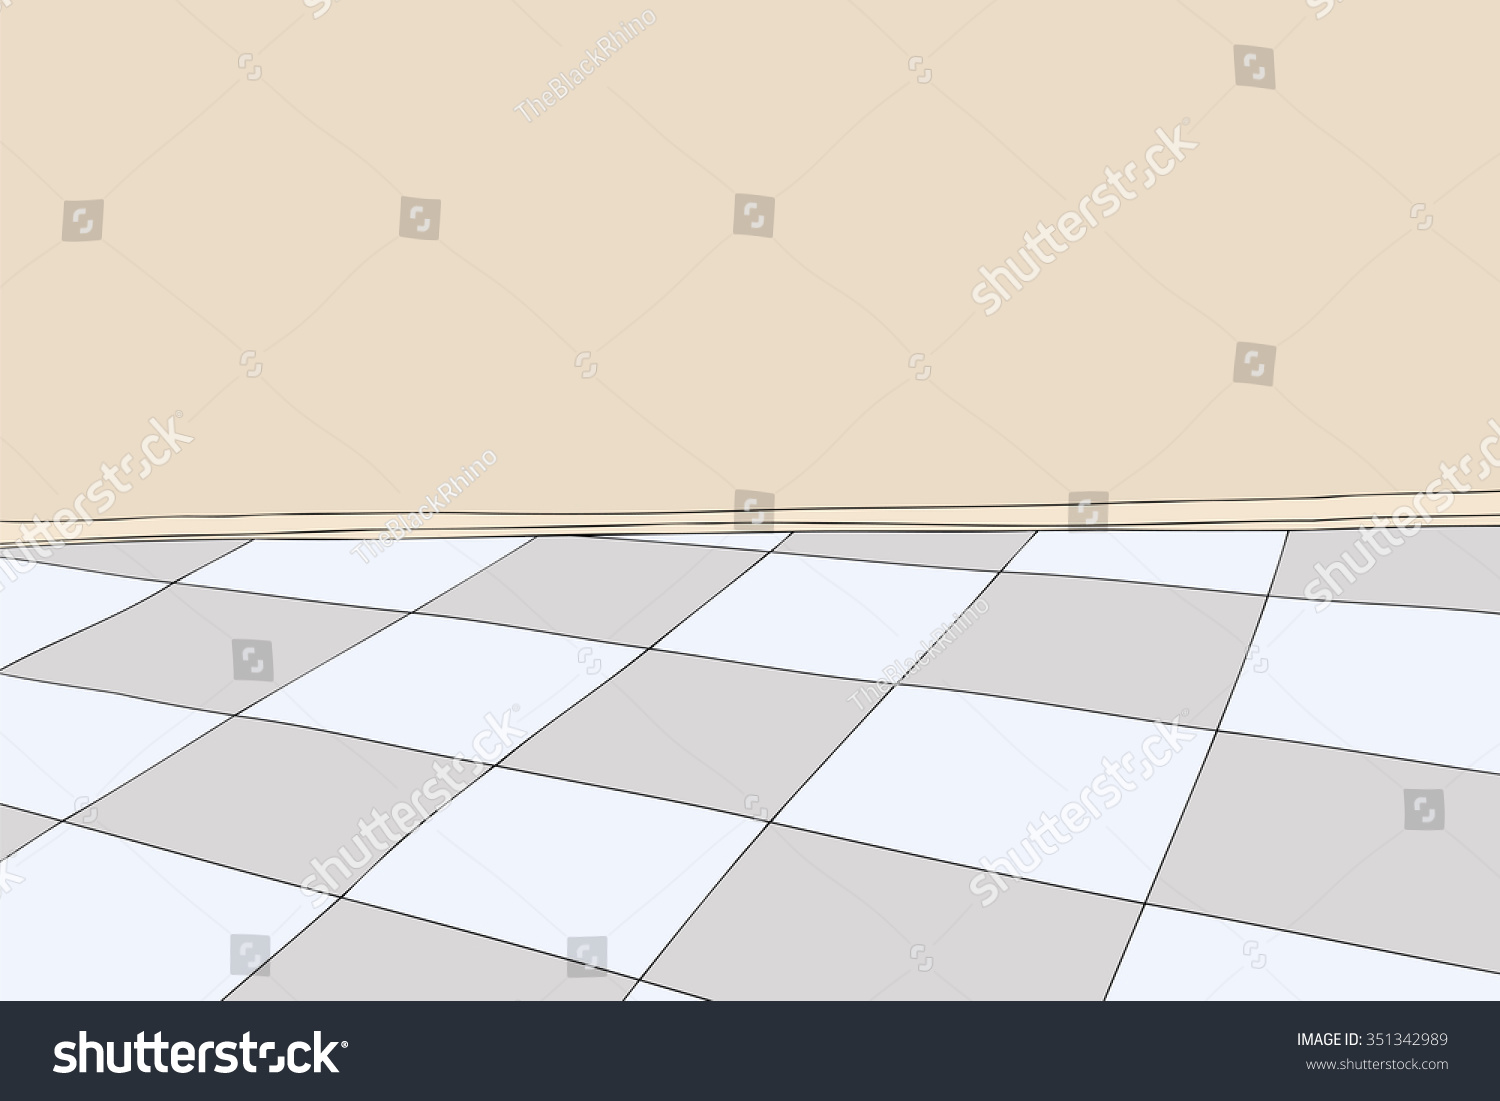 Cartoon Background Of Room With Blank Wall And Checkered Floor Stock Vector